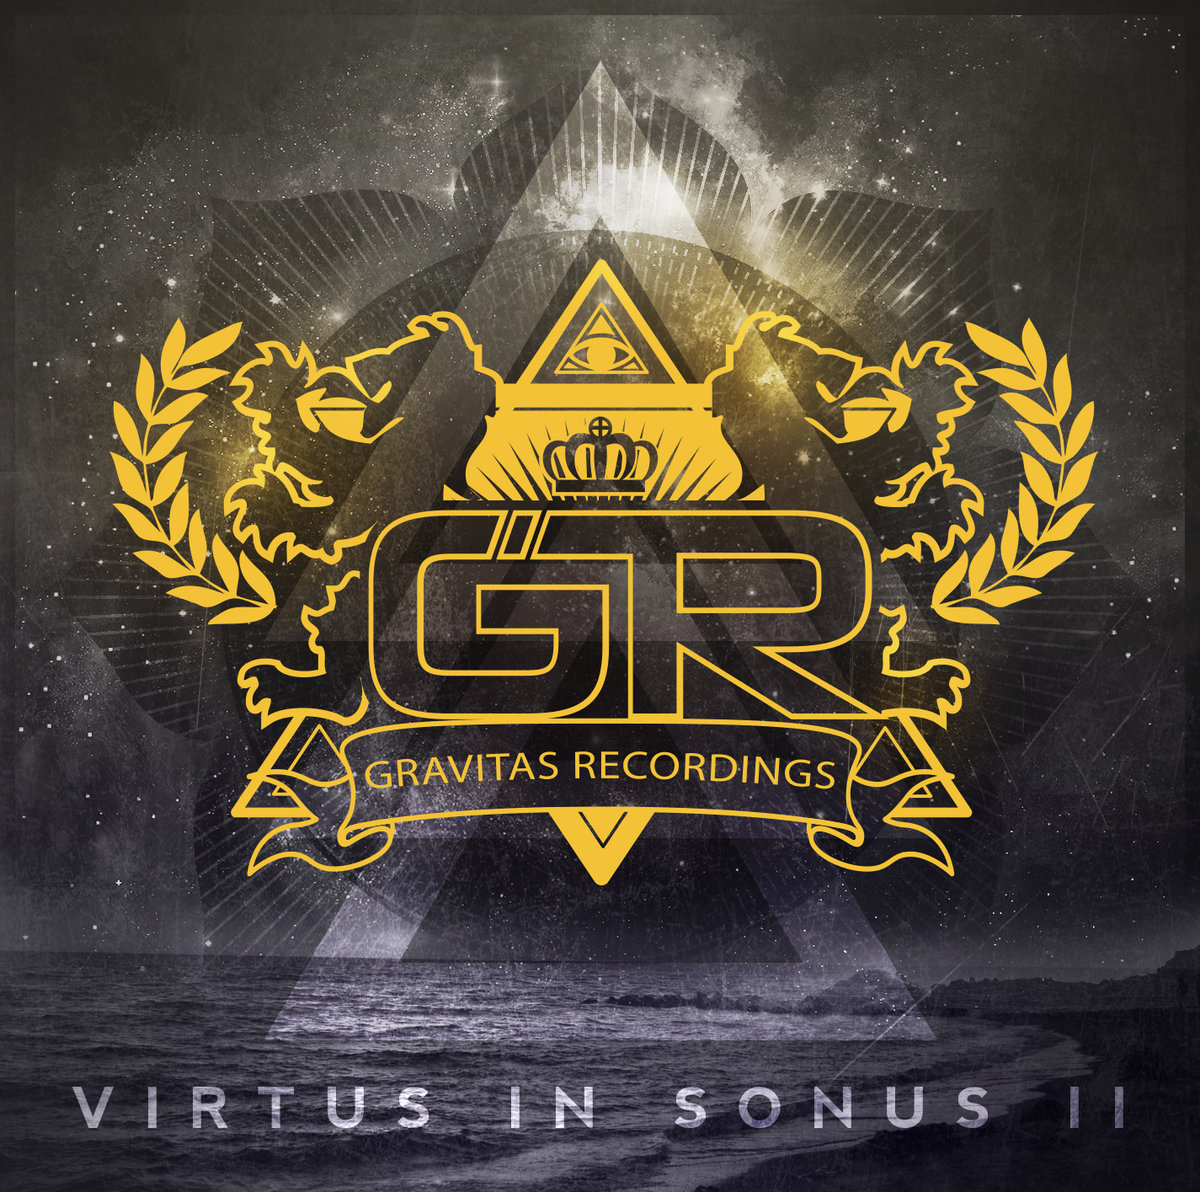 ONE4ALL - Making the Most @ 'Virtus In Sonus II' album (Austin)